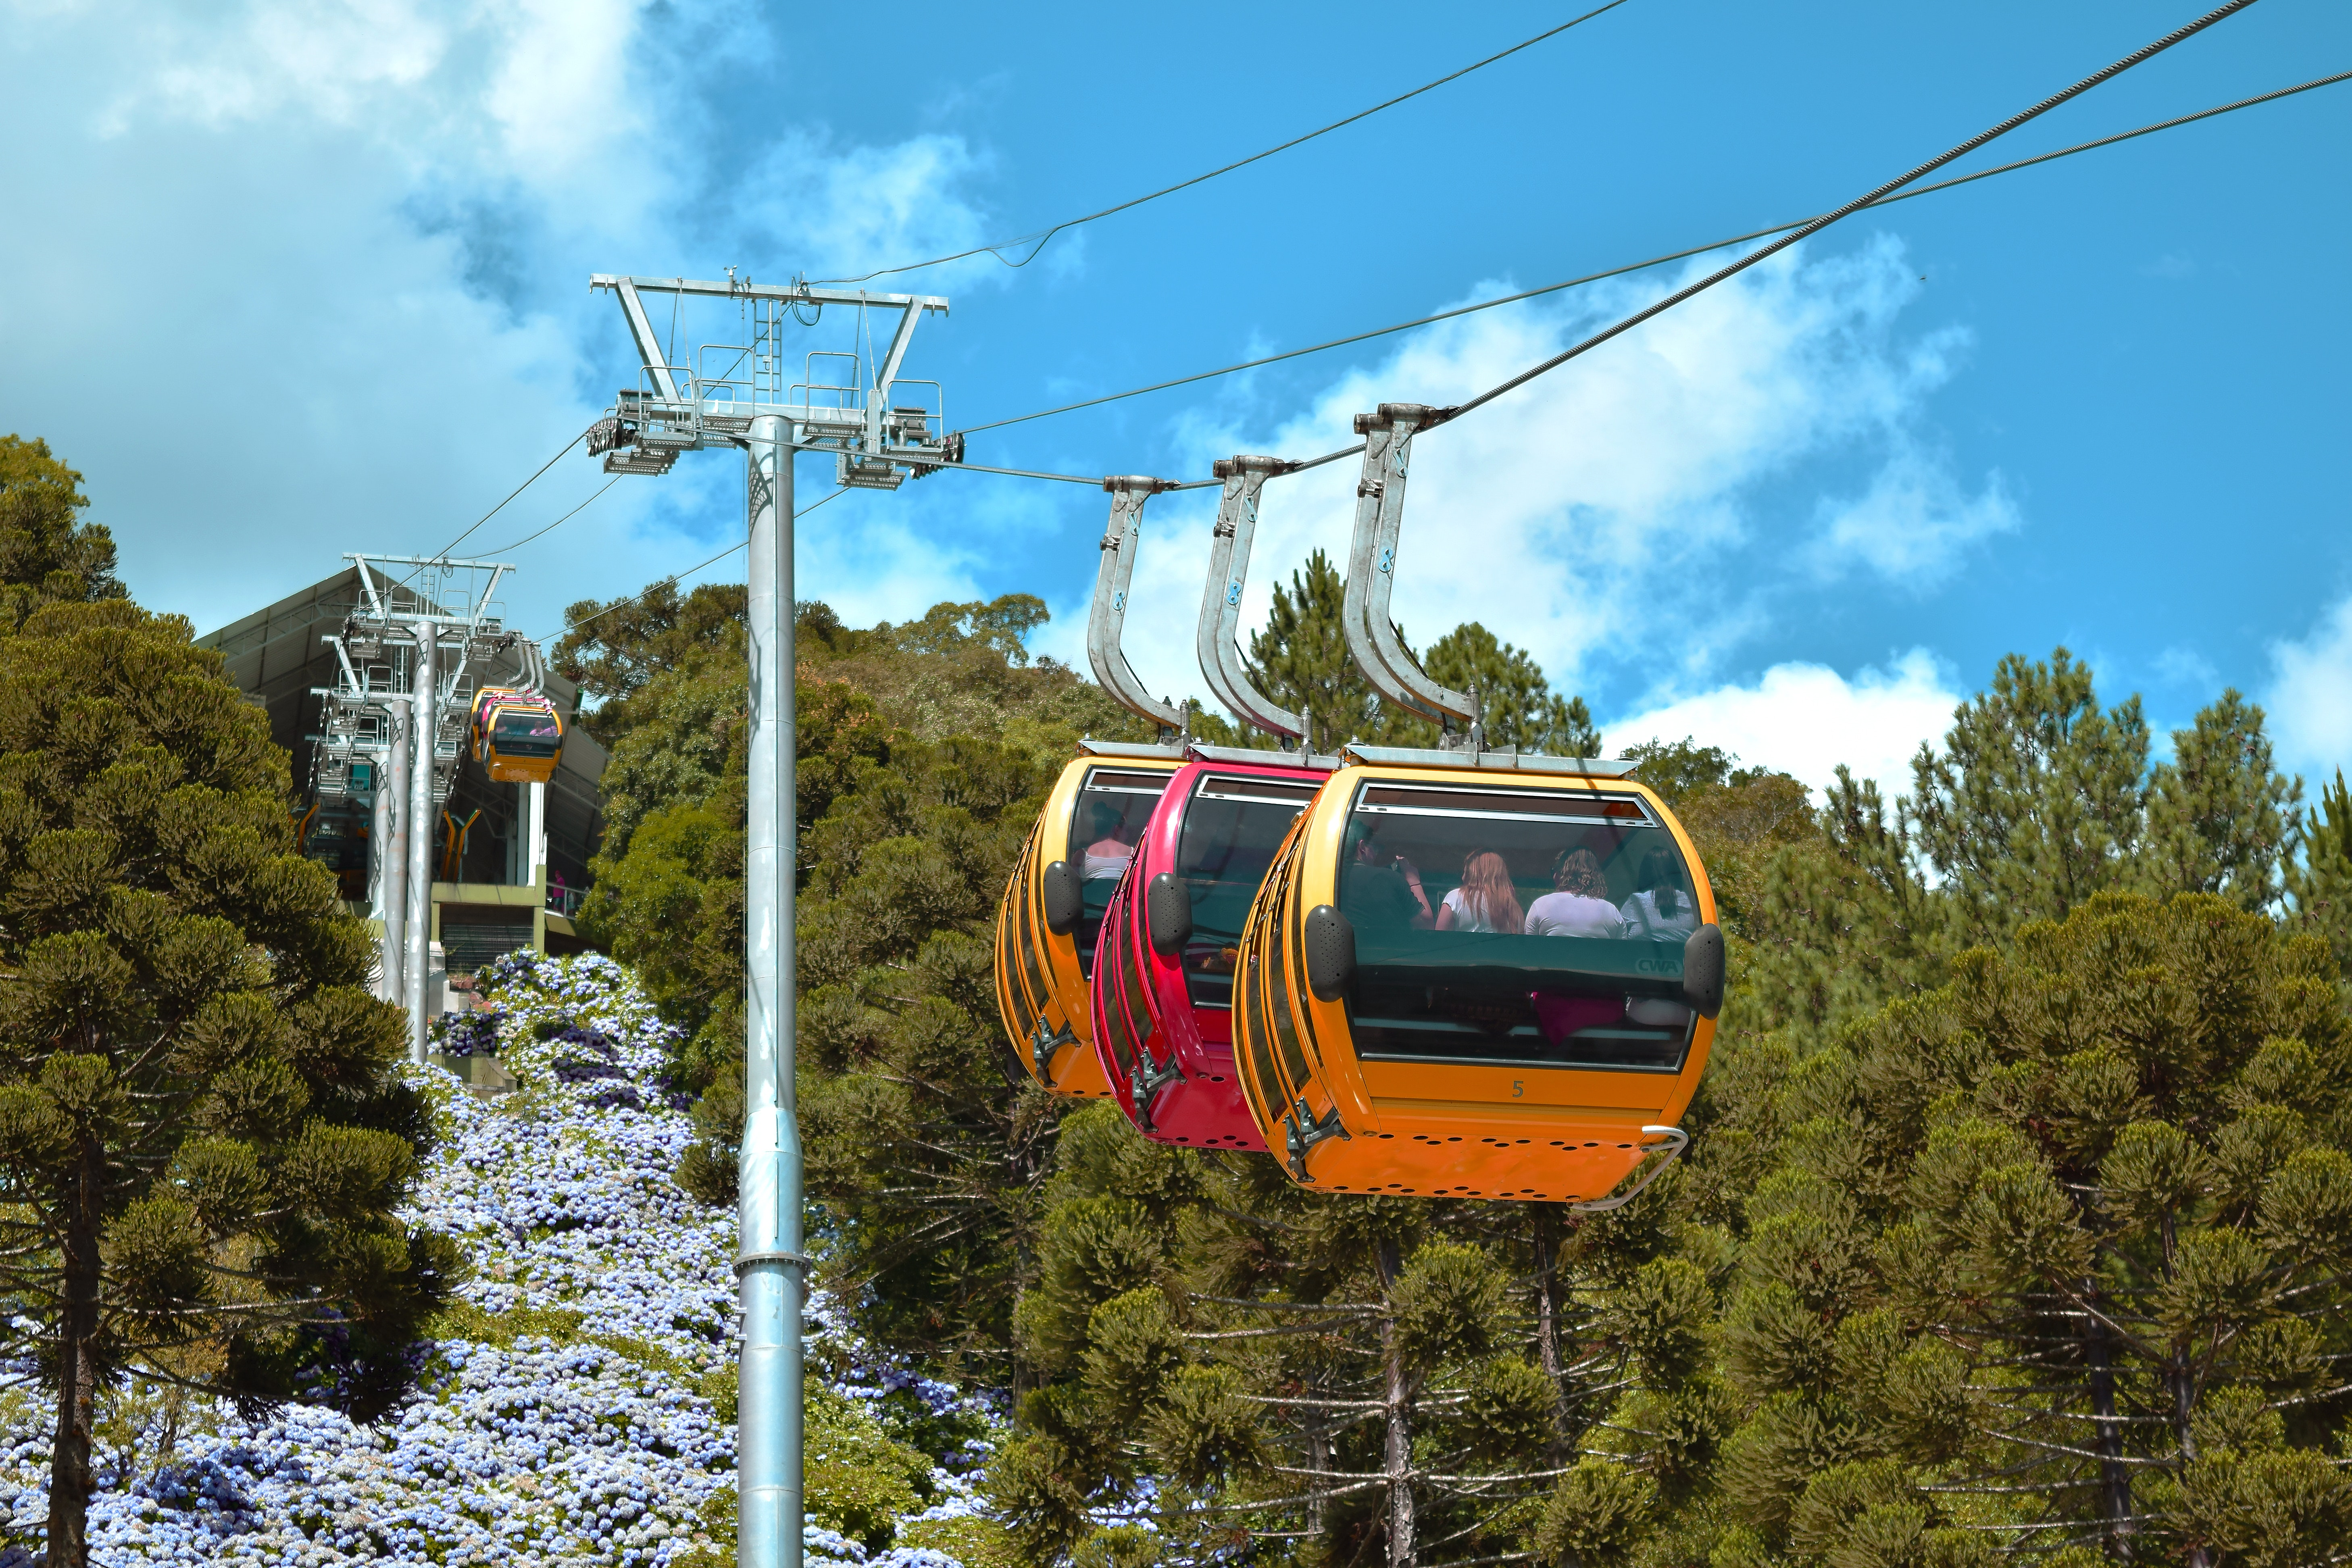 Two Yellow Cable Cab With Red in the Middle, Cable cars, Recreation, Vehicle, Trees, HQ Photo